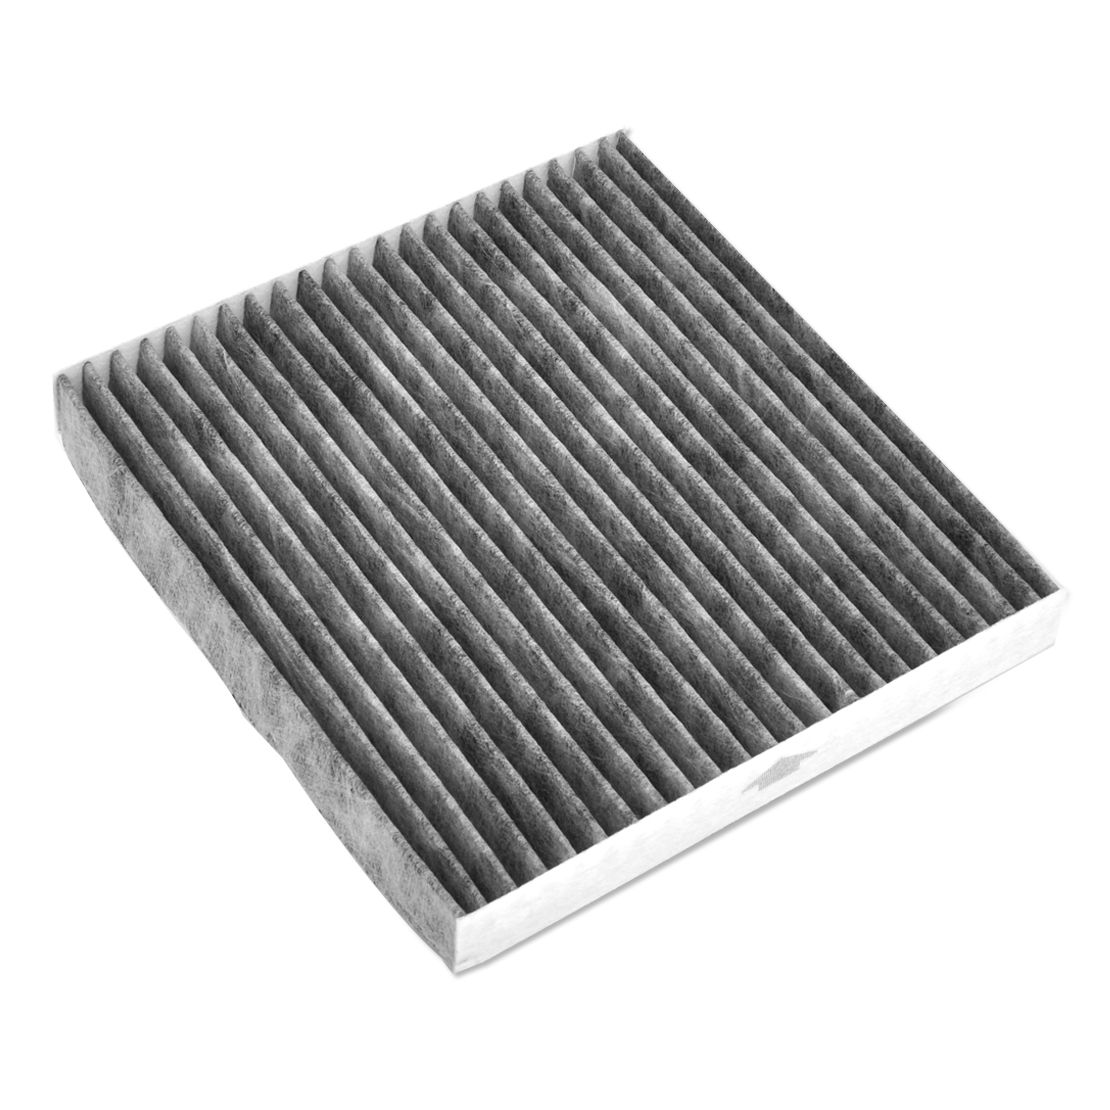 OEM Quality Auto Car Cabin Air Filter OE GJ6A-61-P11 For Mazda CX-7 2007-2012